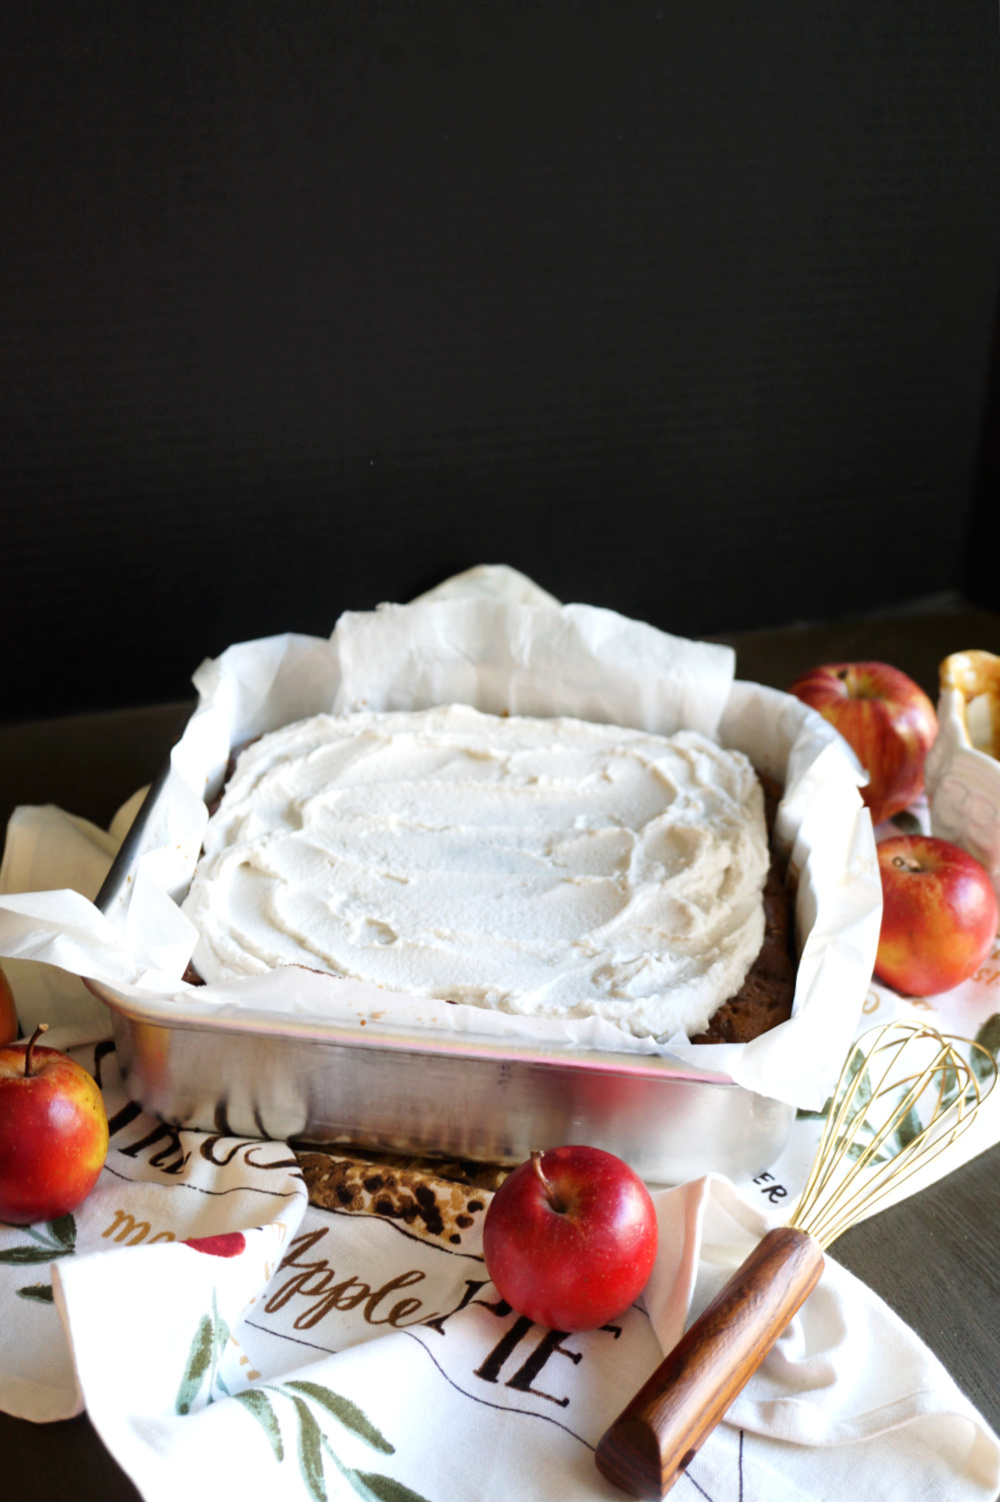 caramel apple cake with whipped cream on top